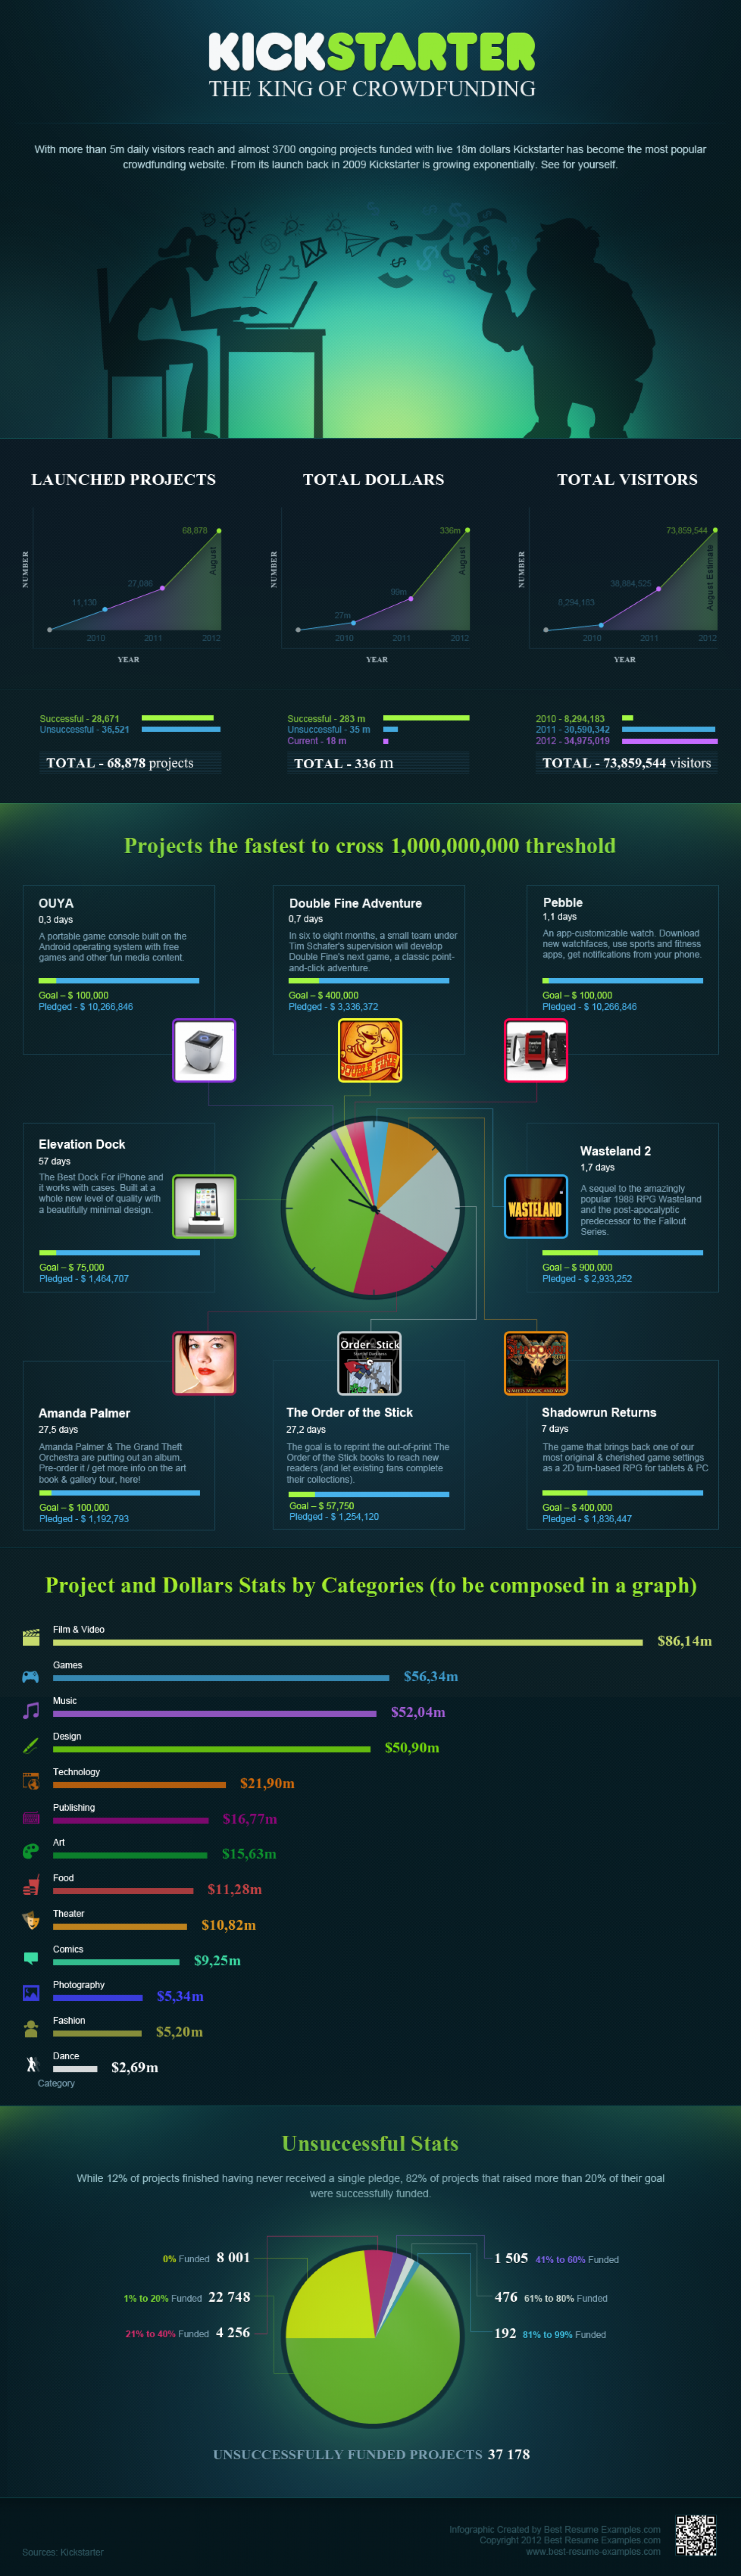 Kickstarter - The King of Crowdfunding Infographic